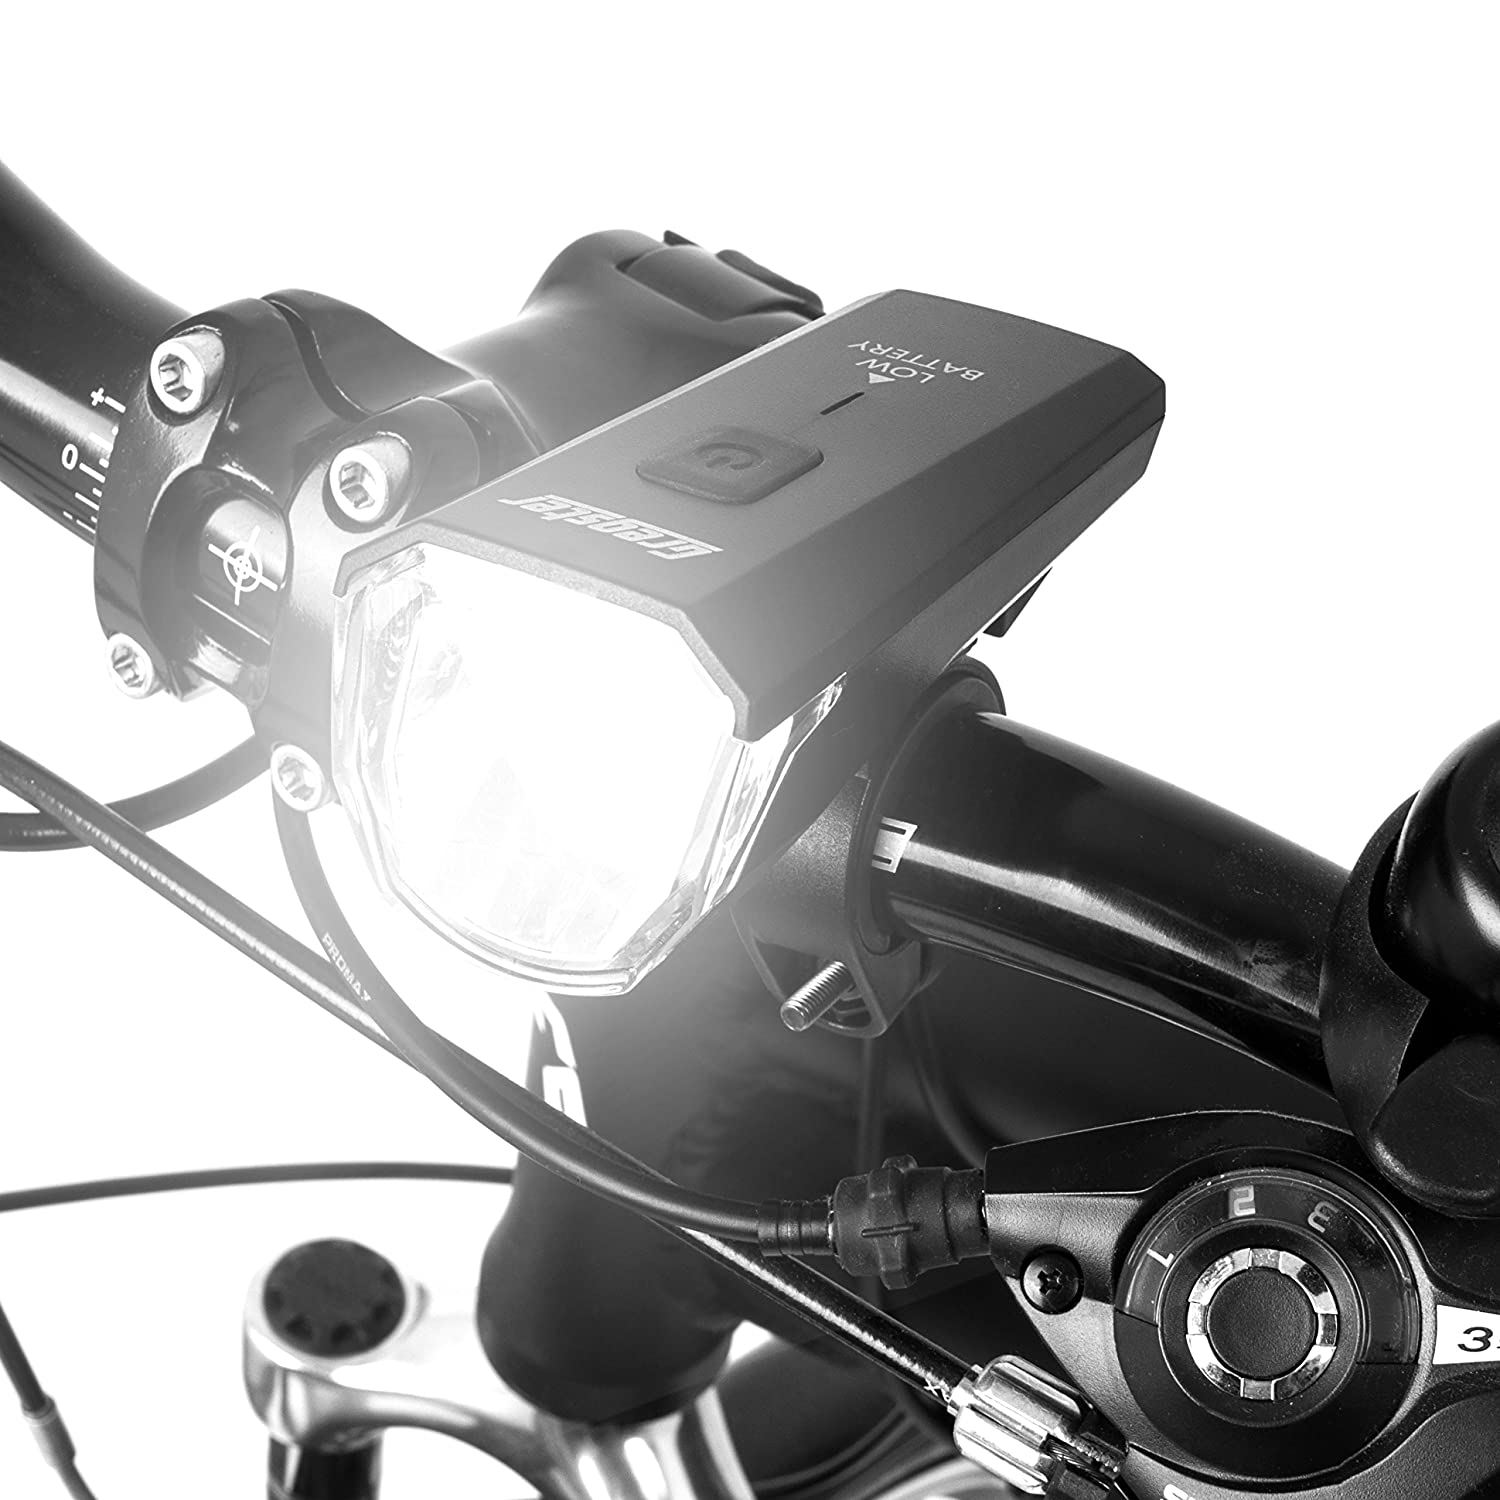 Bike Lights Front and Rear with Mountain Bracket Bright Cycle Lights for Optimum Visibility Gregster LED Bicycle Lights Set with USB Charger